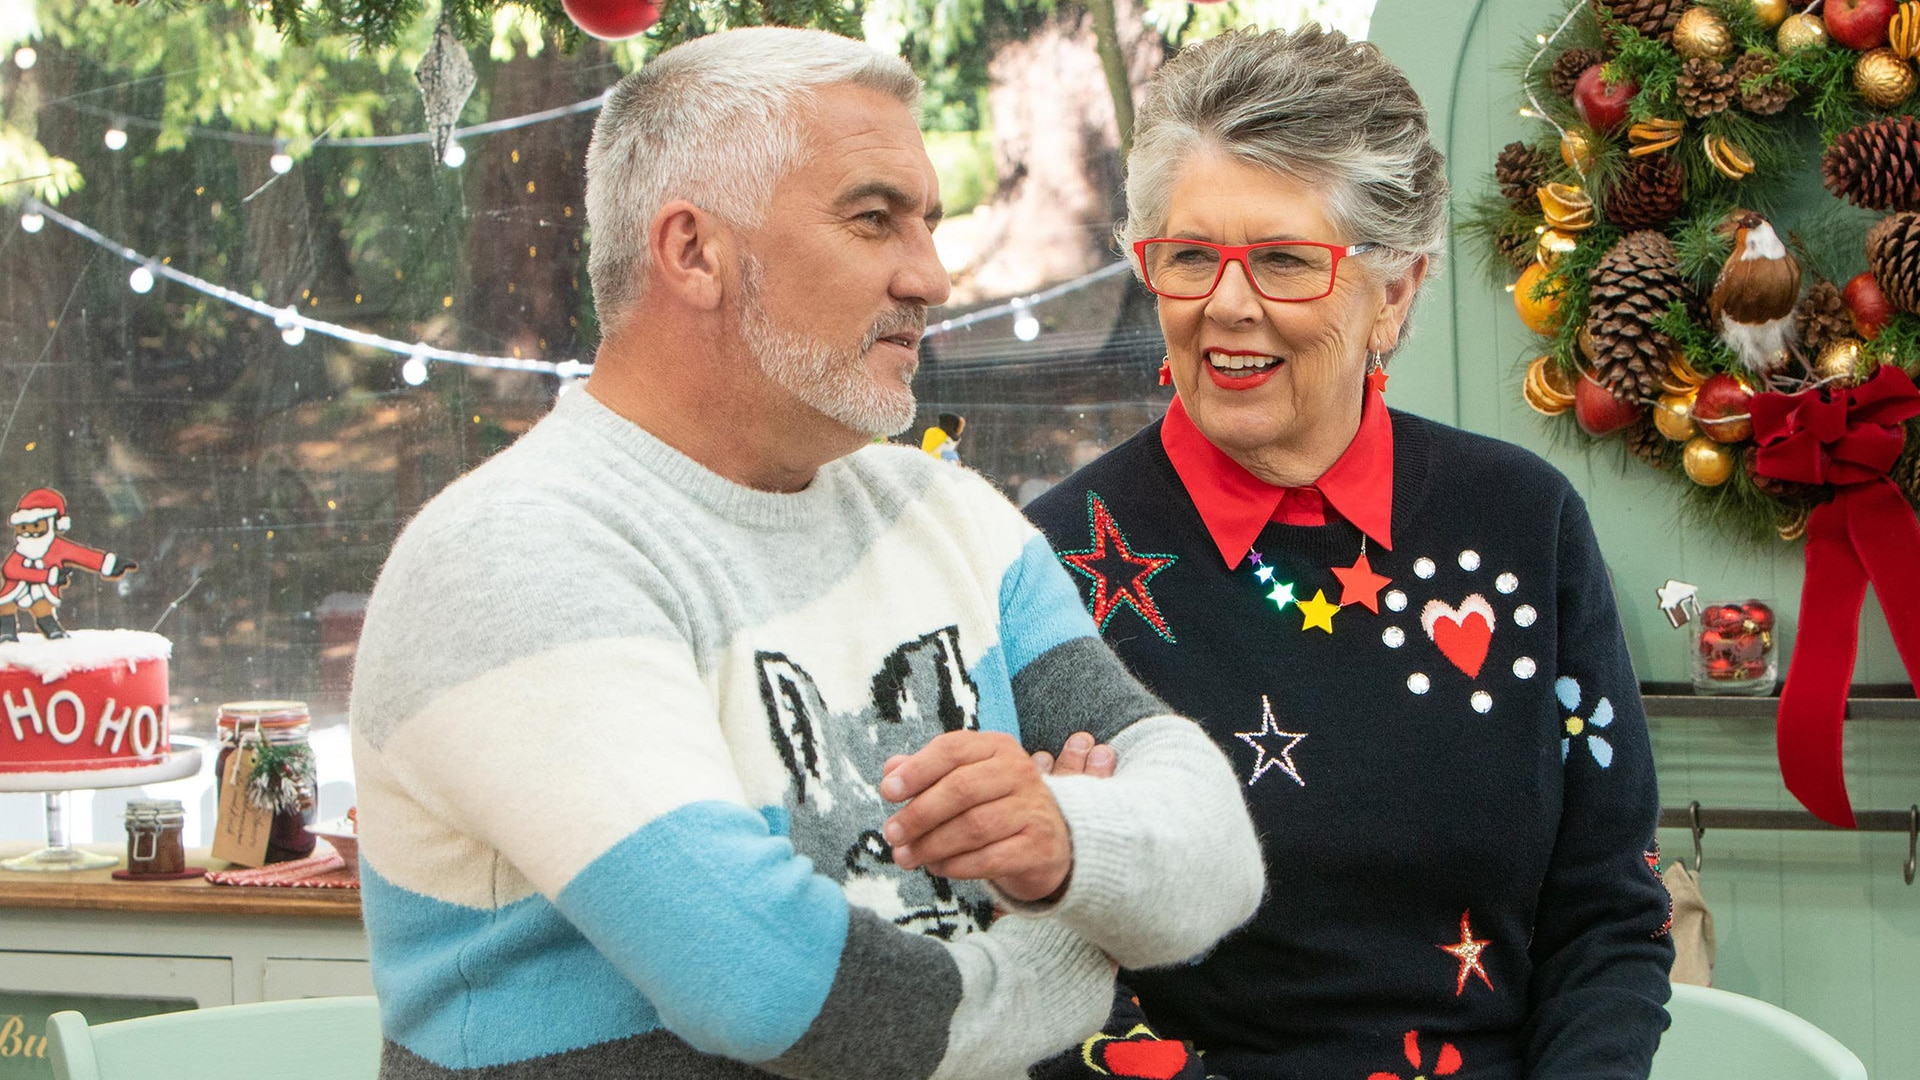 The Great British Bake Off: Festive Specials All 4